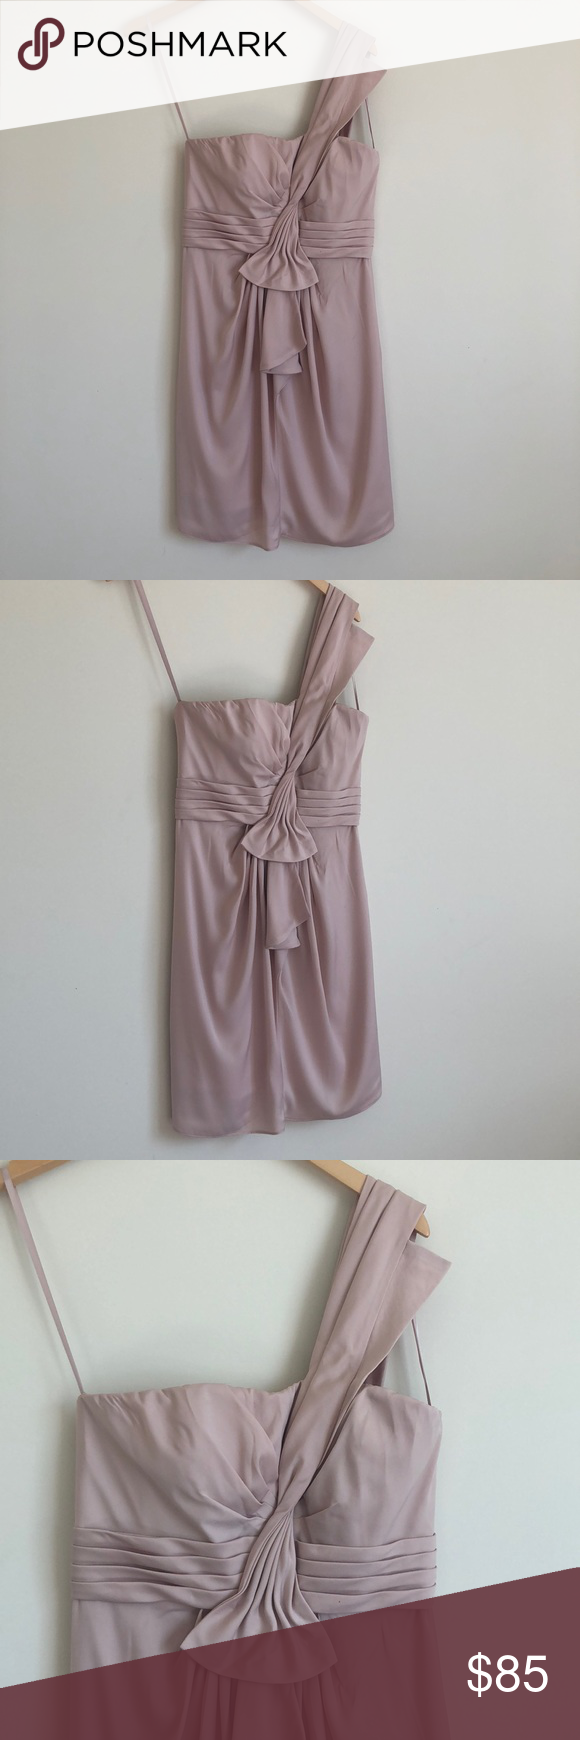 Bcbg Pale Pink Dress Beautifully Made Perfect For Any